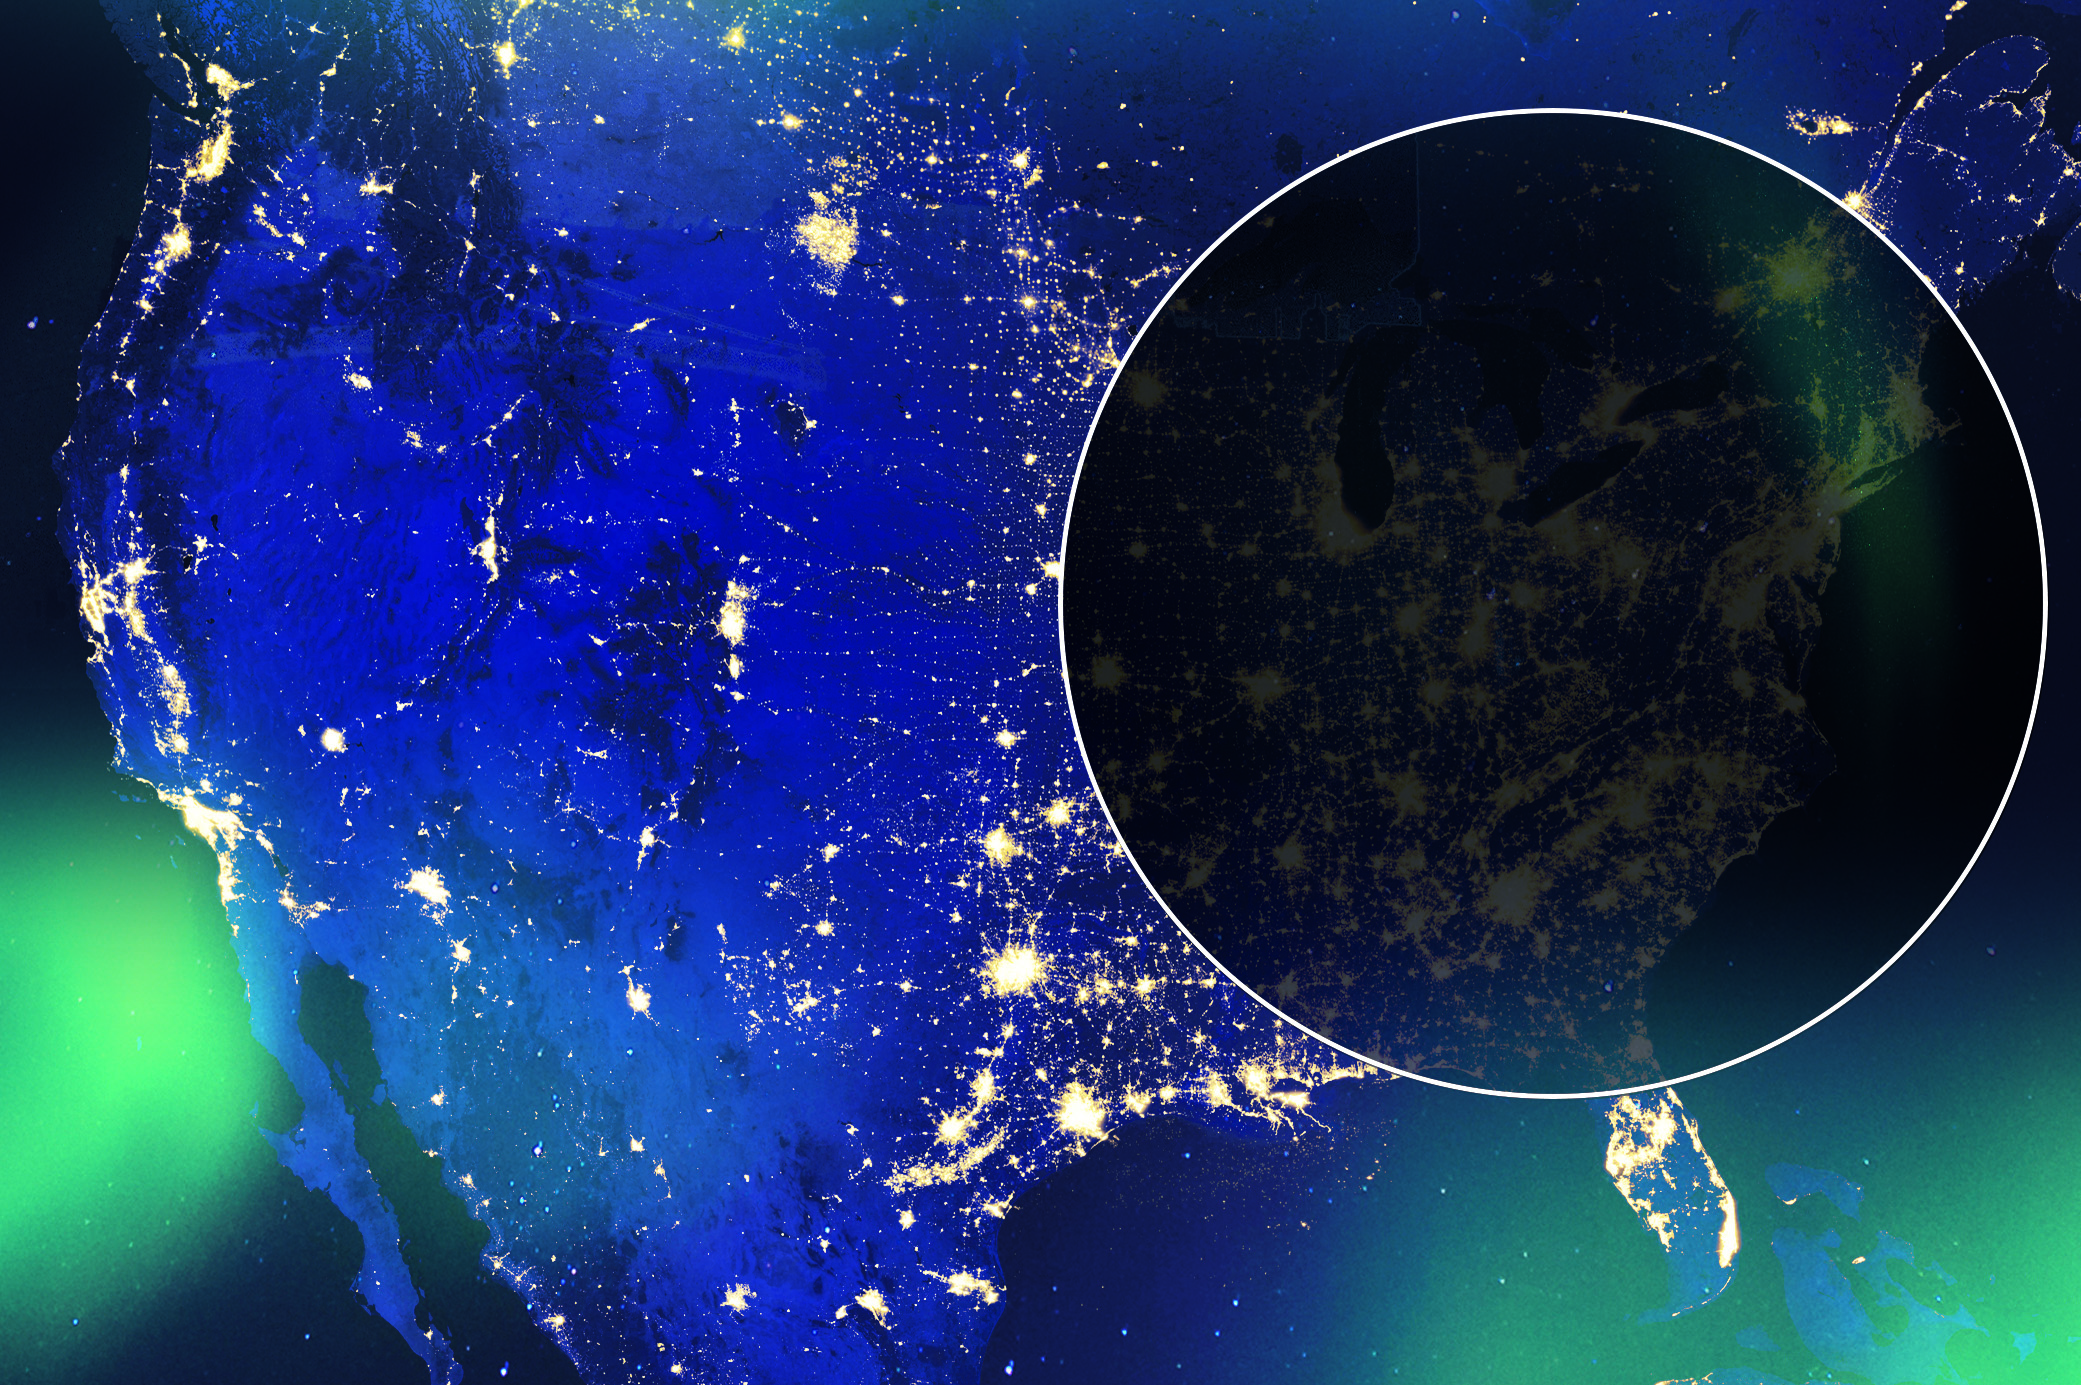 a graphic showing the united states lit up at night